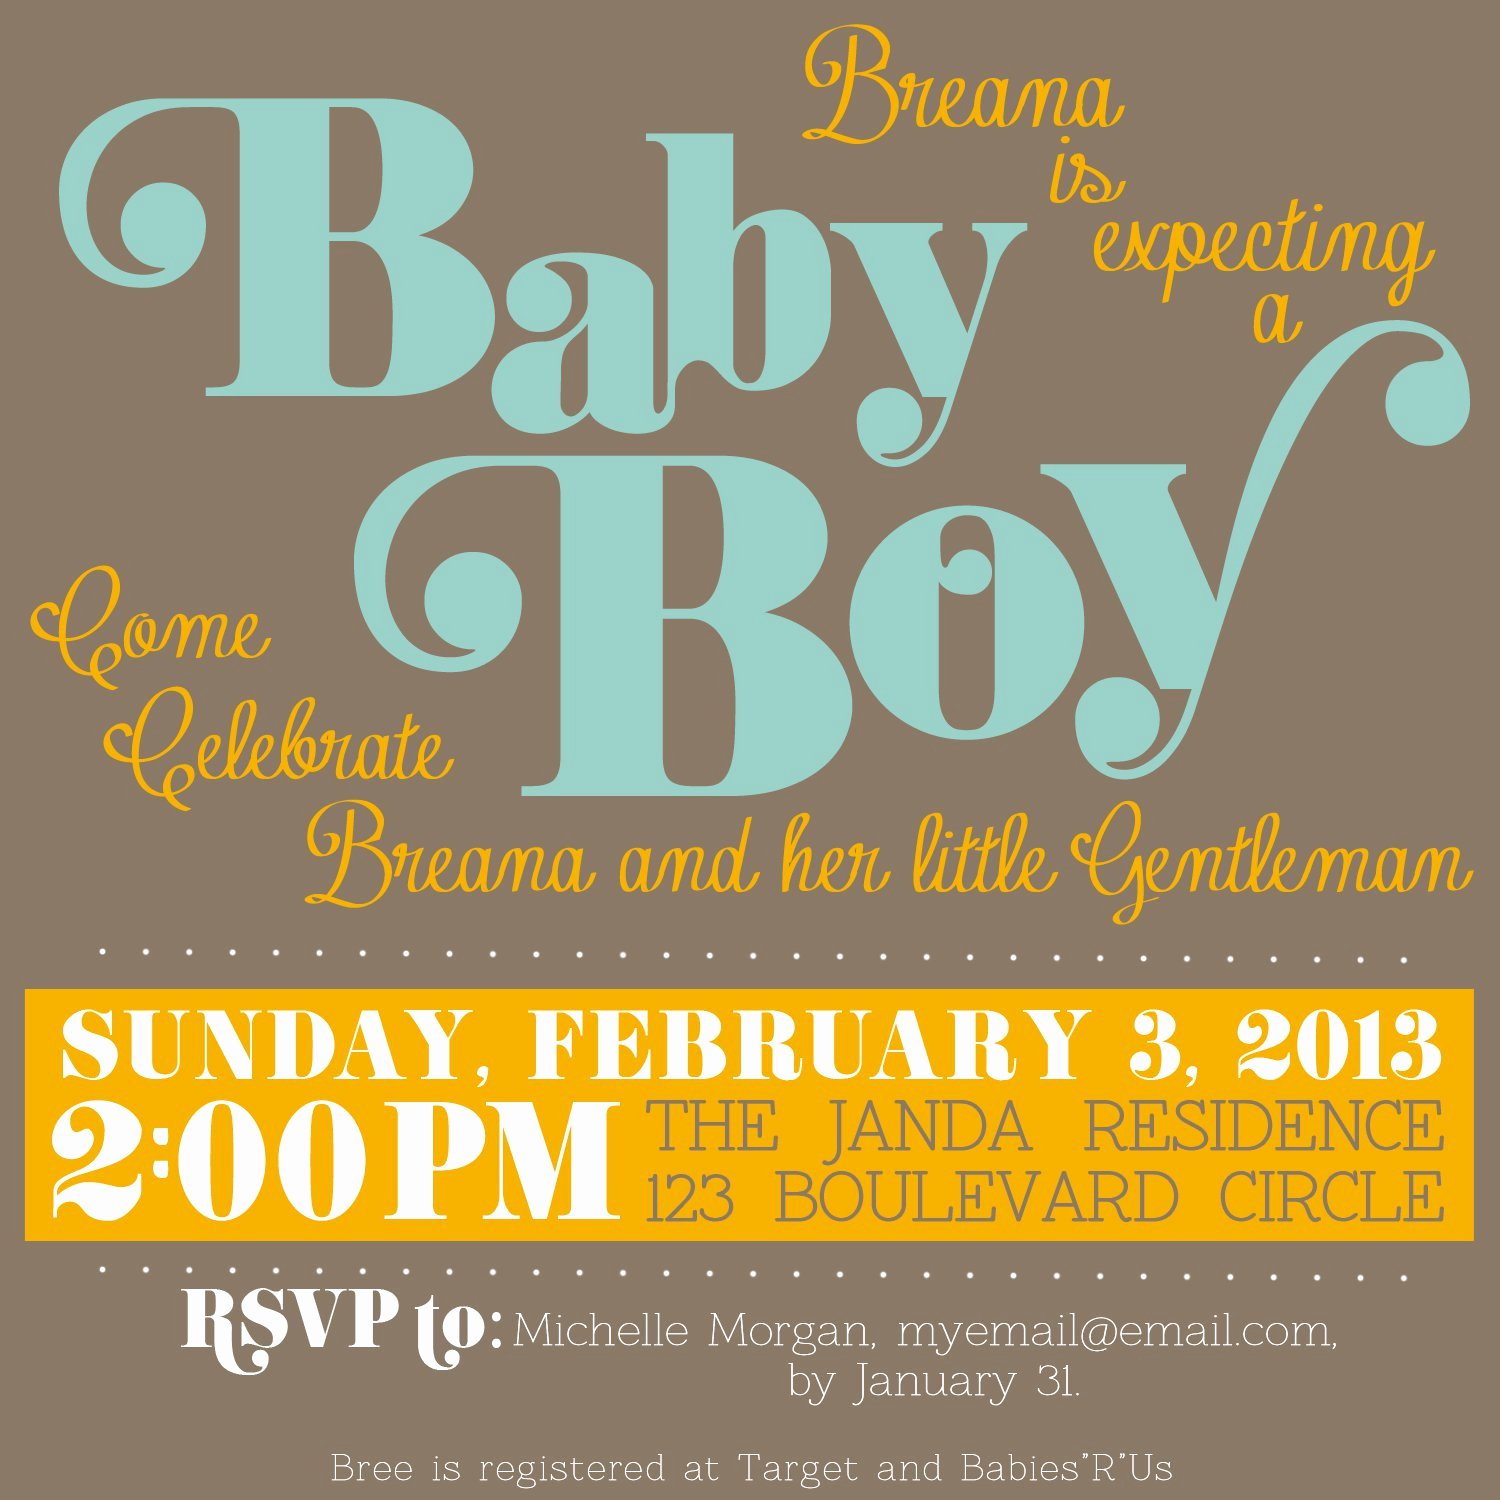 Free Baby Shower Invitation Templates Awesome Free Baby Shower Invitation Templates Free Baby Shower